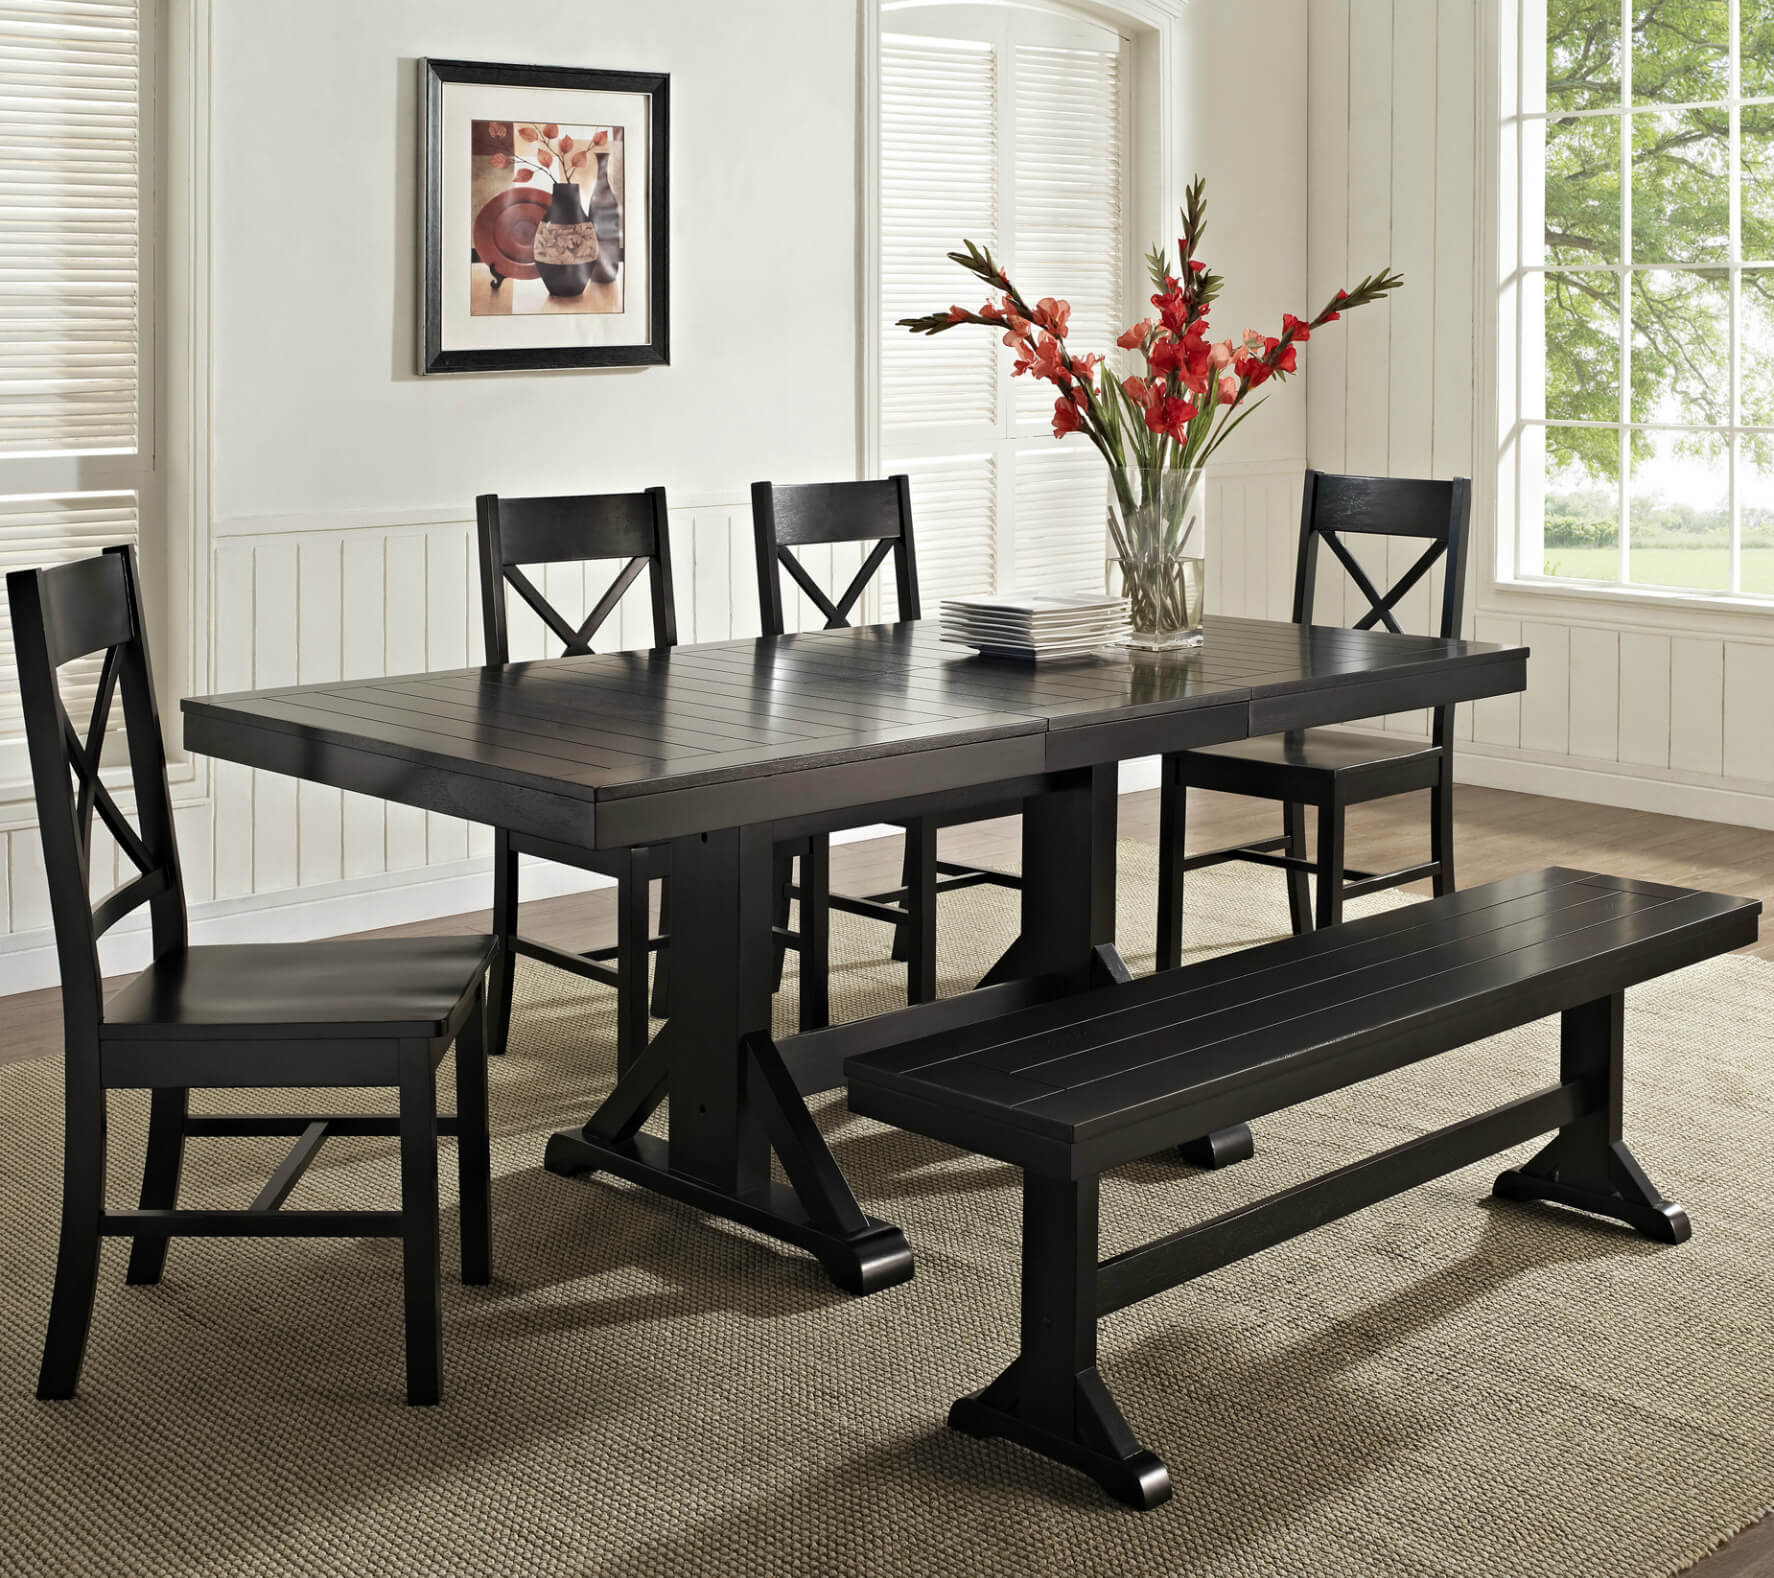 Here's a great cottage style dining set with bench. While it's a dark finish, the lines give it a whimsical look that fits well in a cottage or coastal style home.